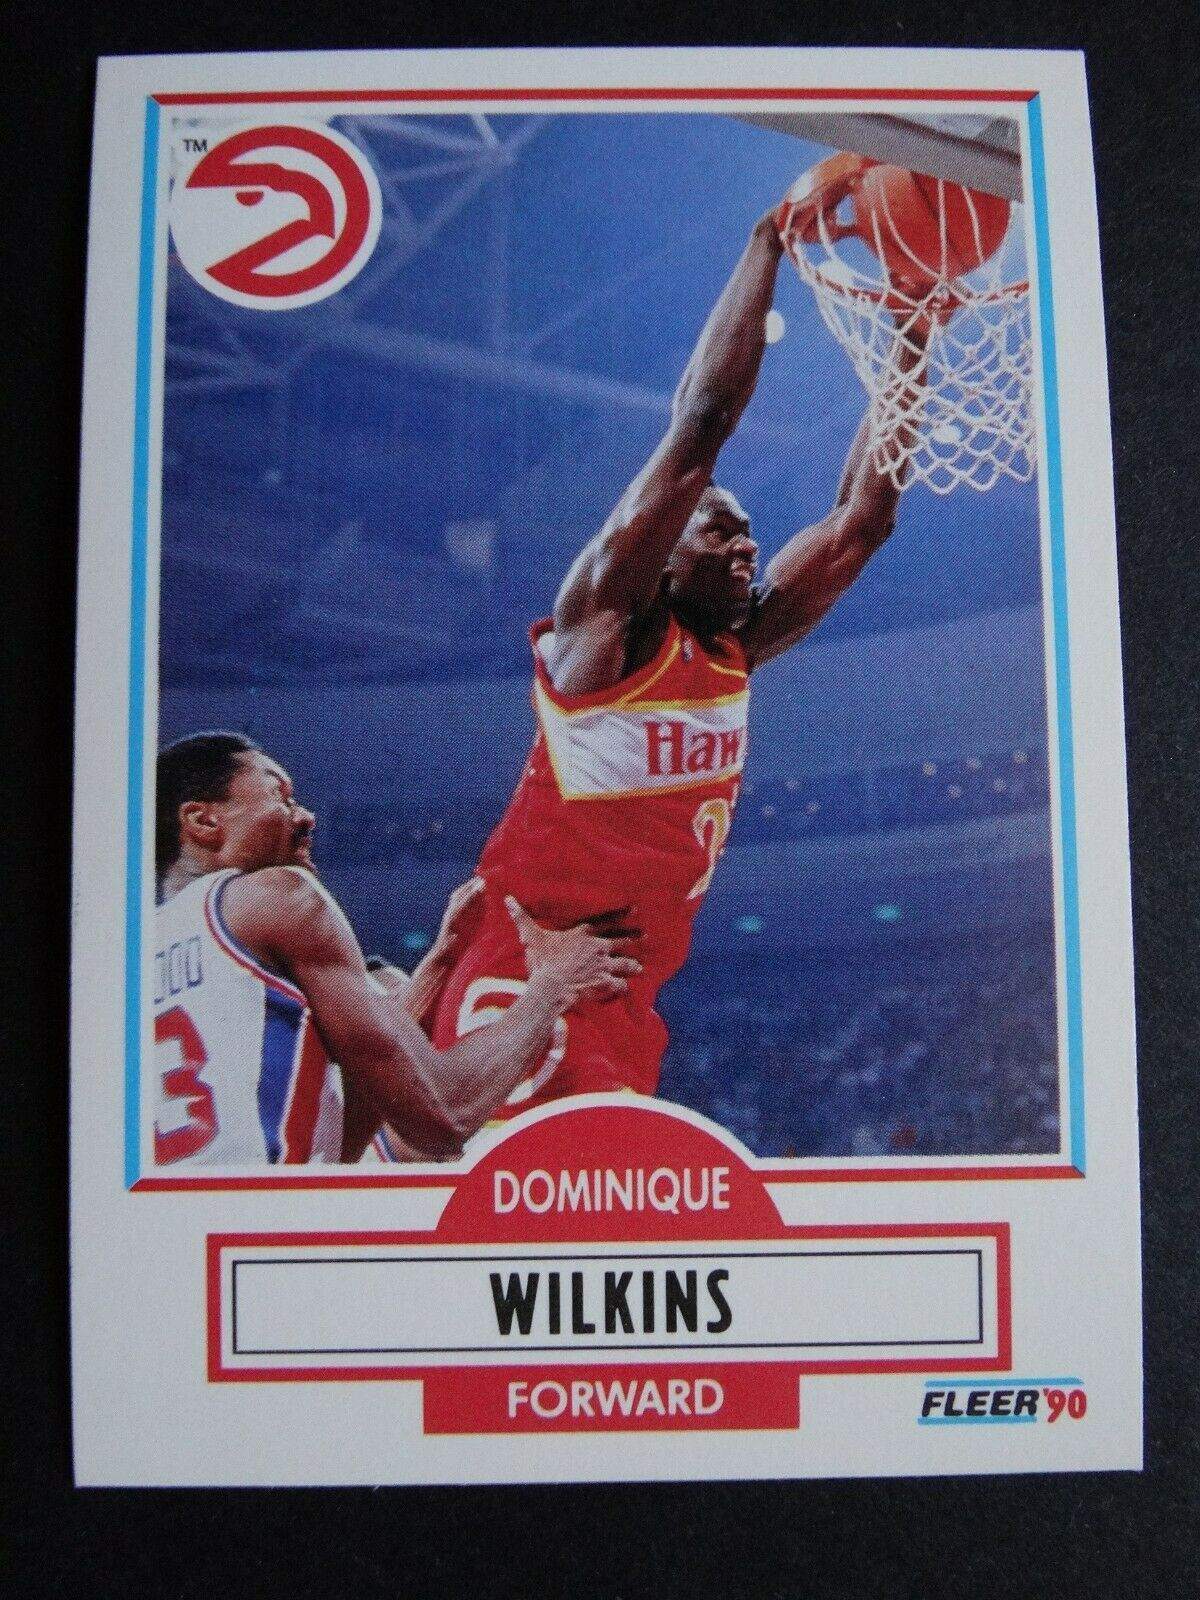 1990-91 Fleer Basketball Cards All-stars Complete Your Set You U Pick List 1-198